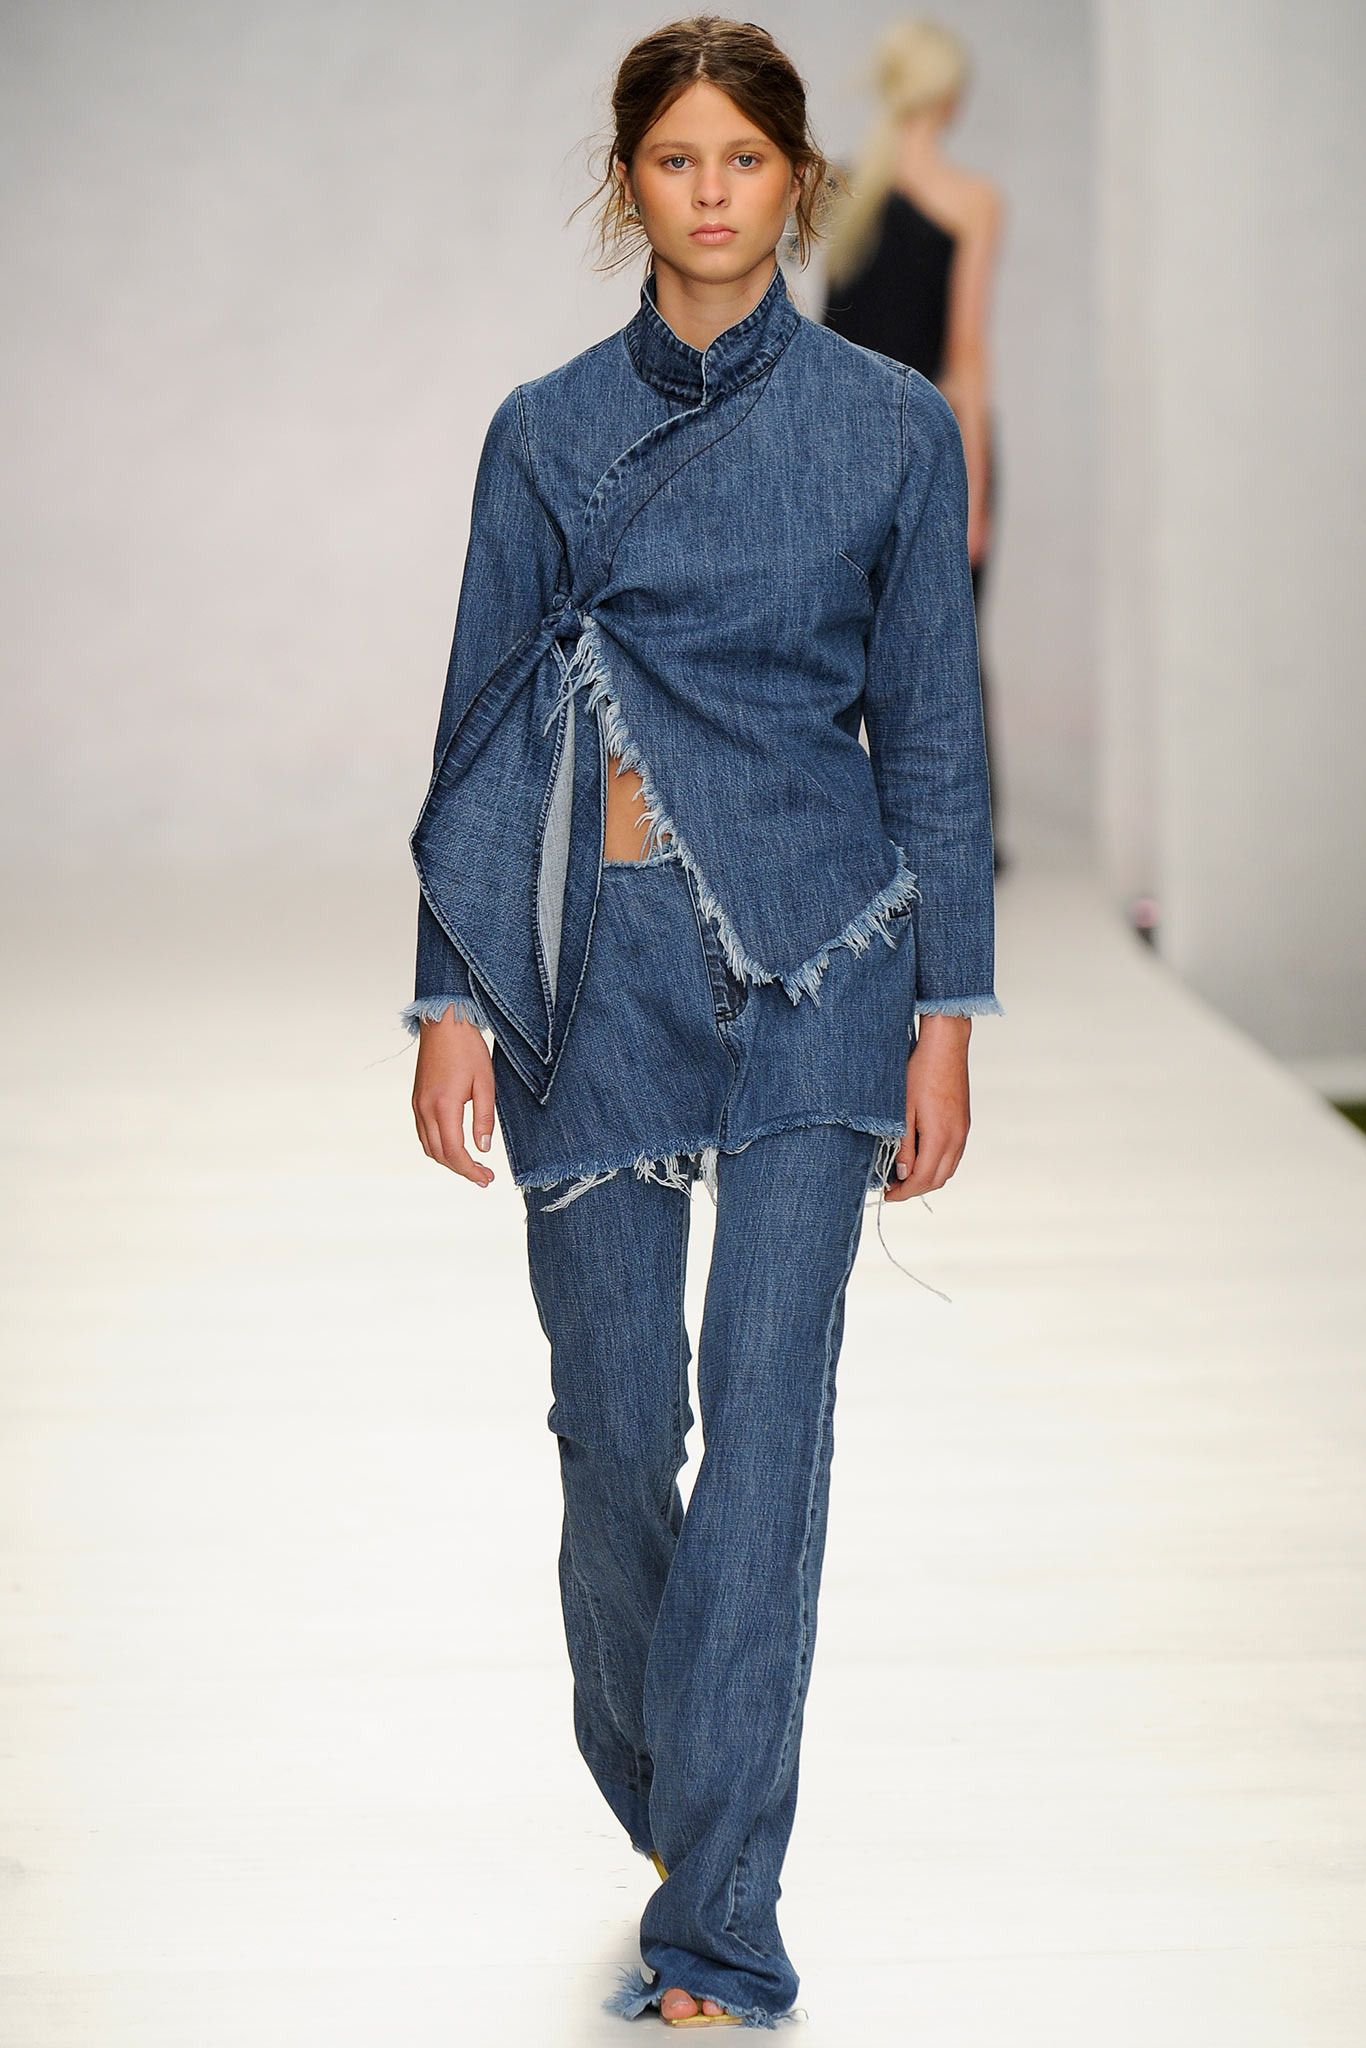 Marques'Almeida Spring 2014 Ready-to-Wear - Collection - Gallery - Style.com